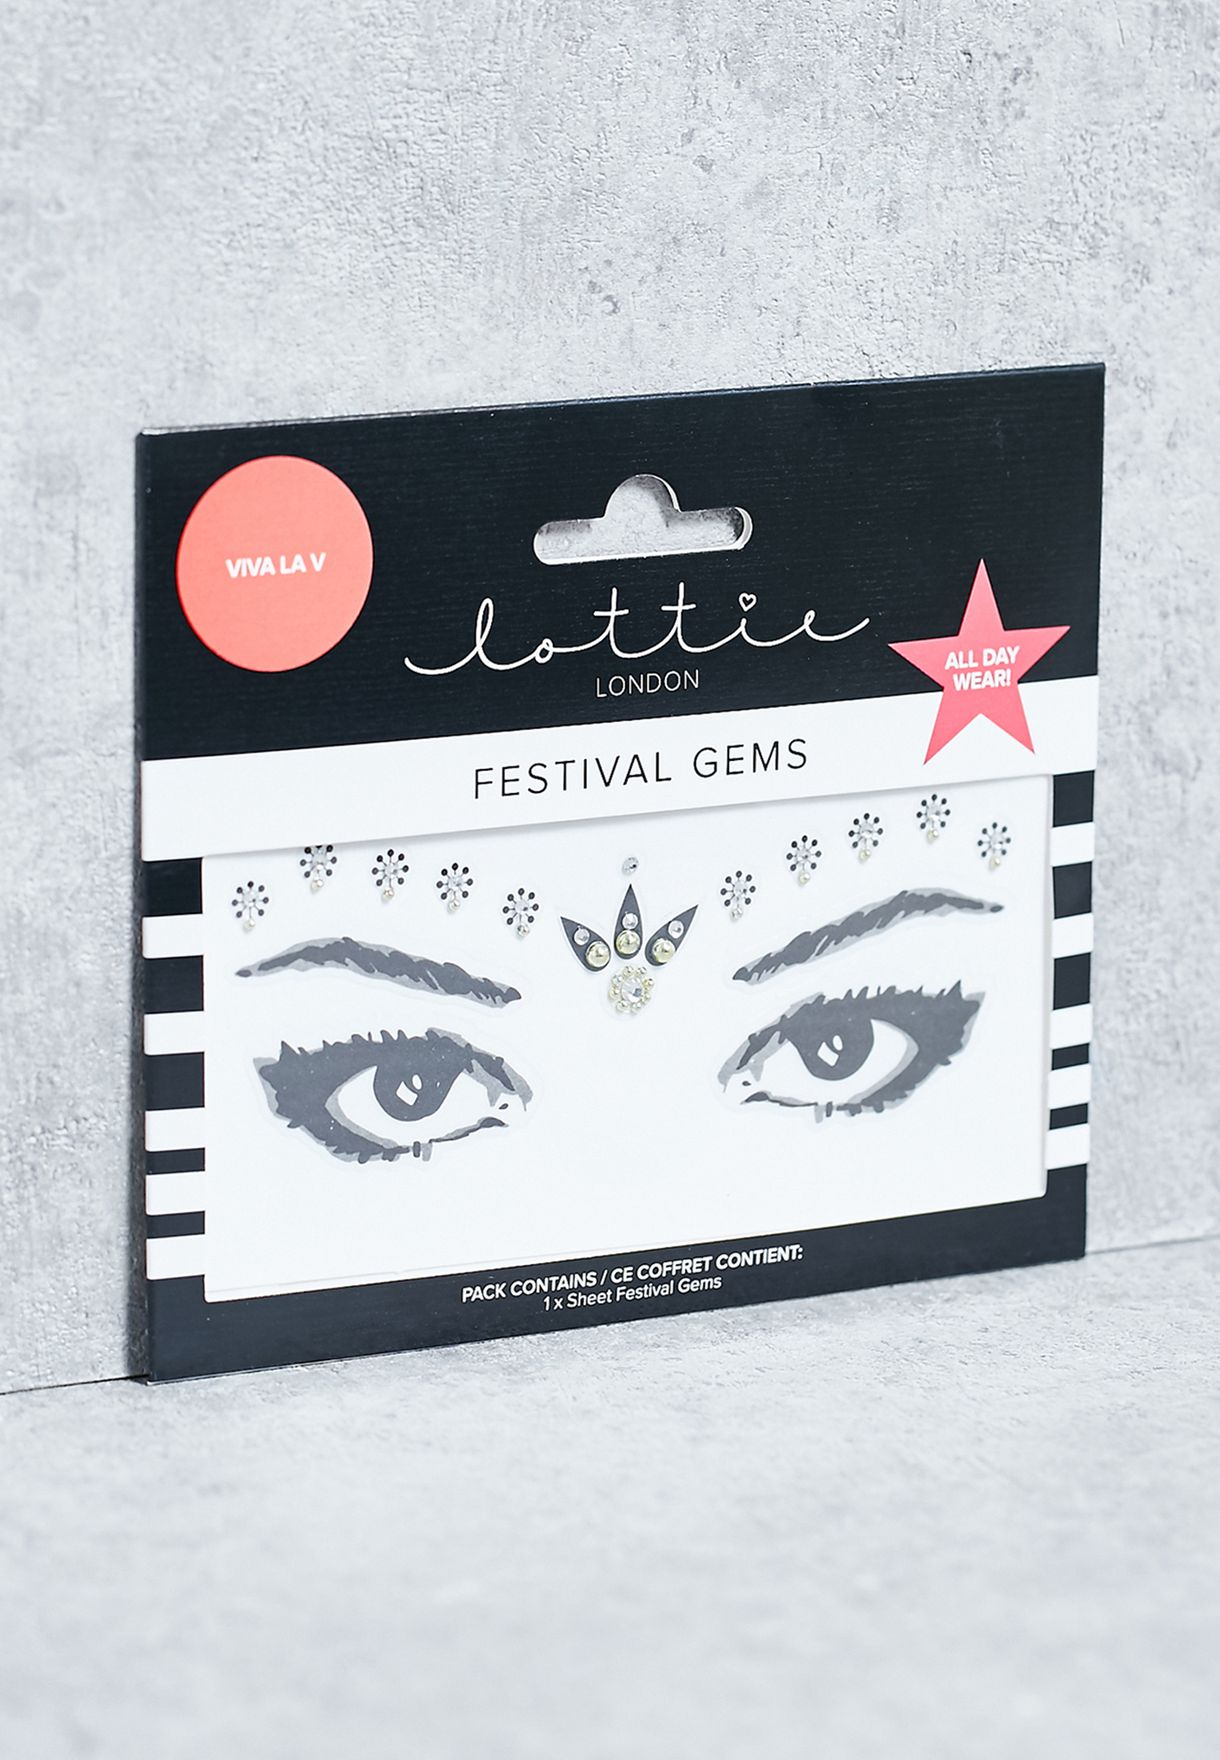 Shop Lottie Silver Festival Gem Viva La V 5060414314310 For Women Eyelash